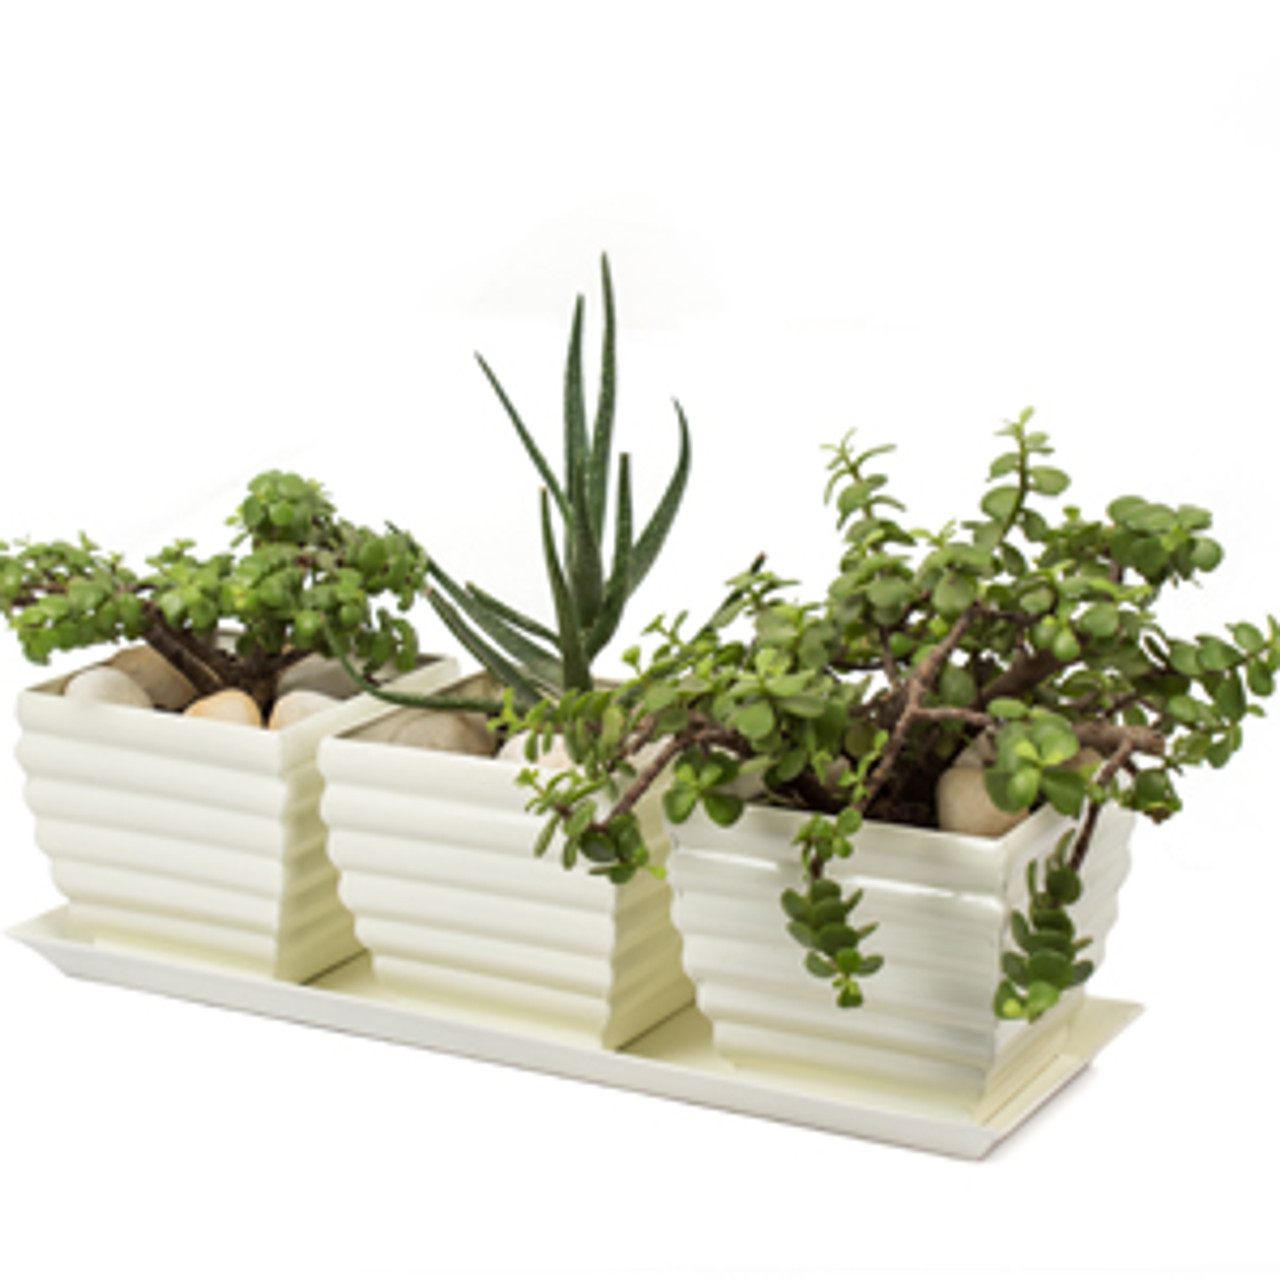 3 Piece I Love you indoor and outdoor planter. Heart